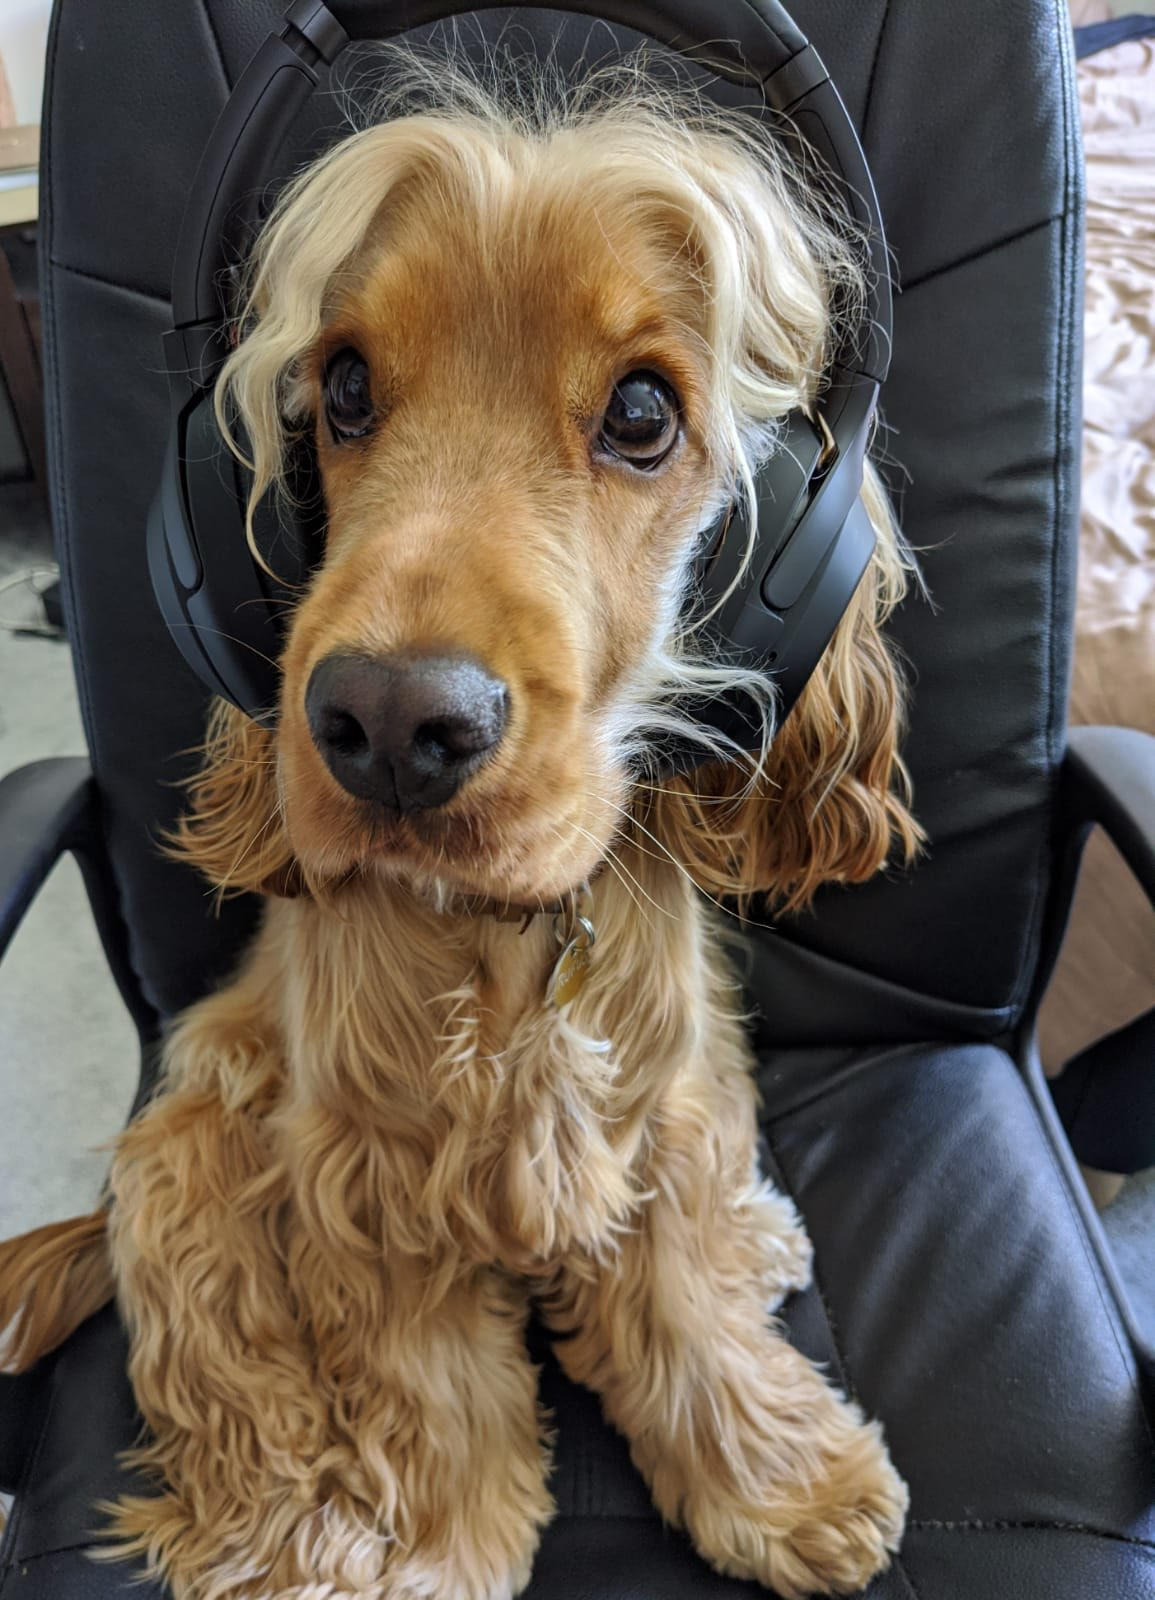 Dog sitting on chair wearing headphones